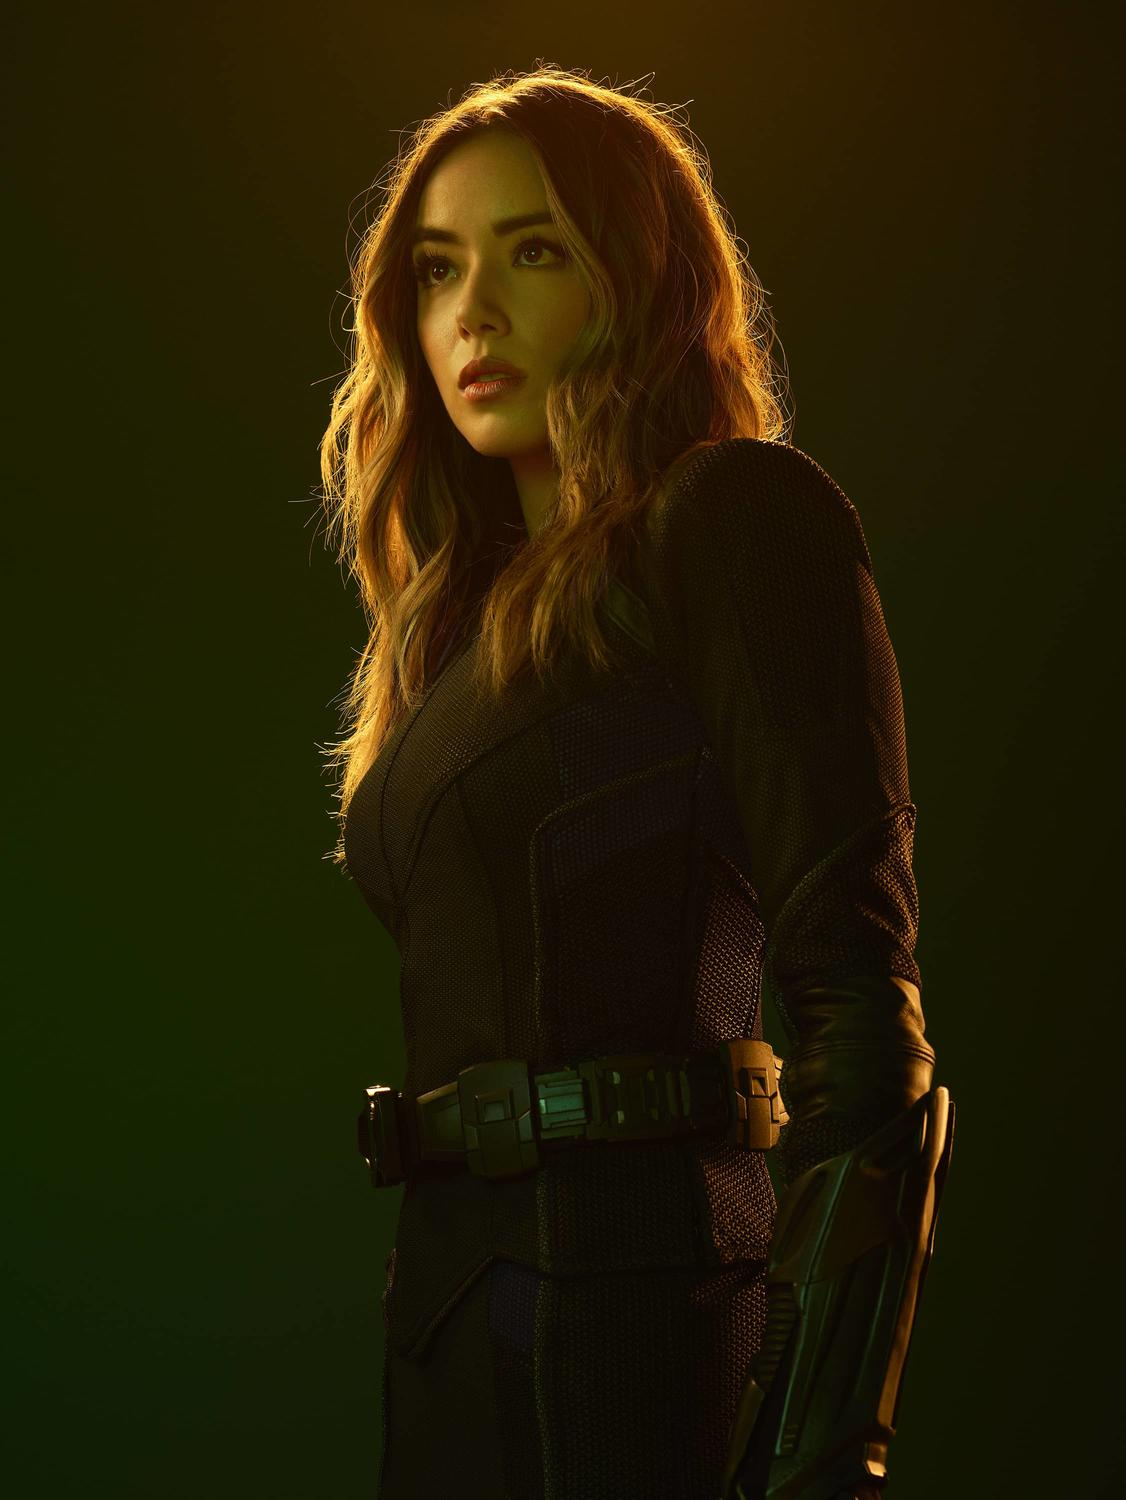 CHLOE BENNET AS DAISY 'QUAKE' JOHNSON'